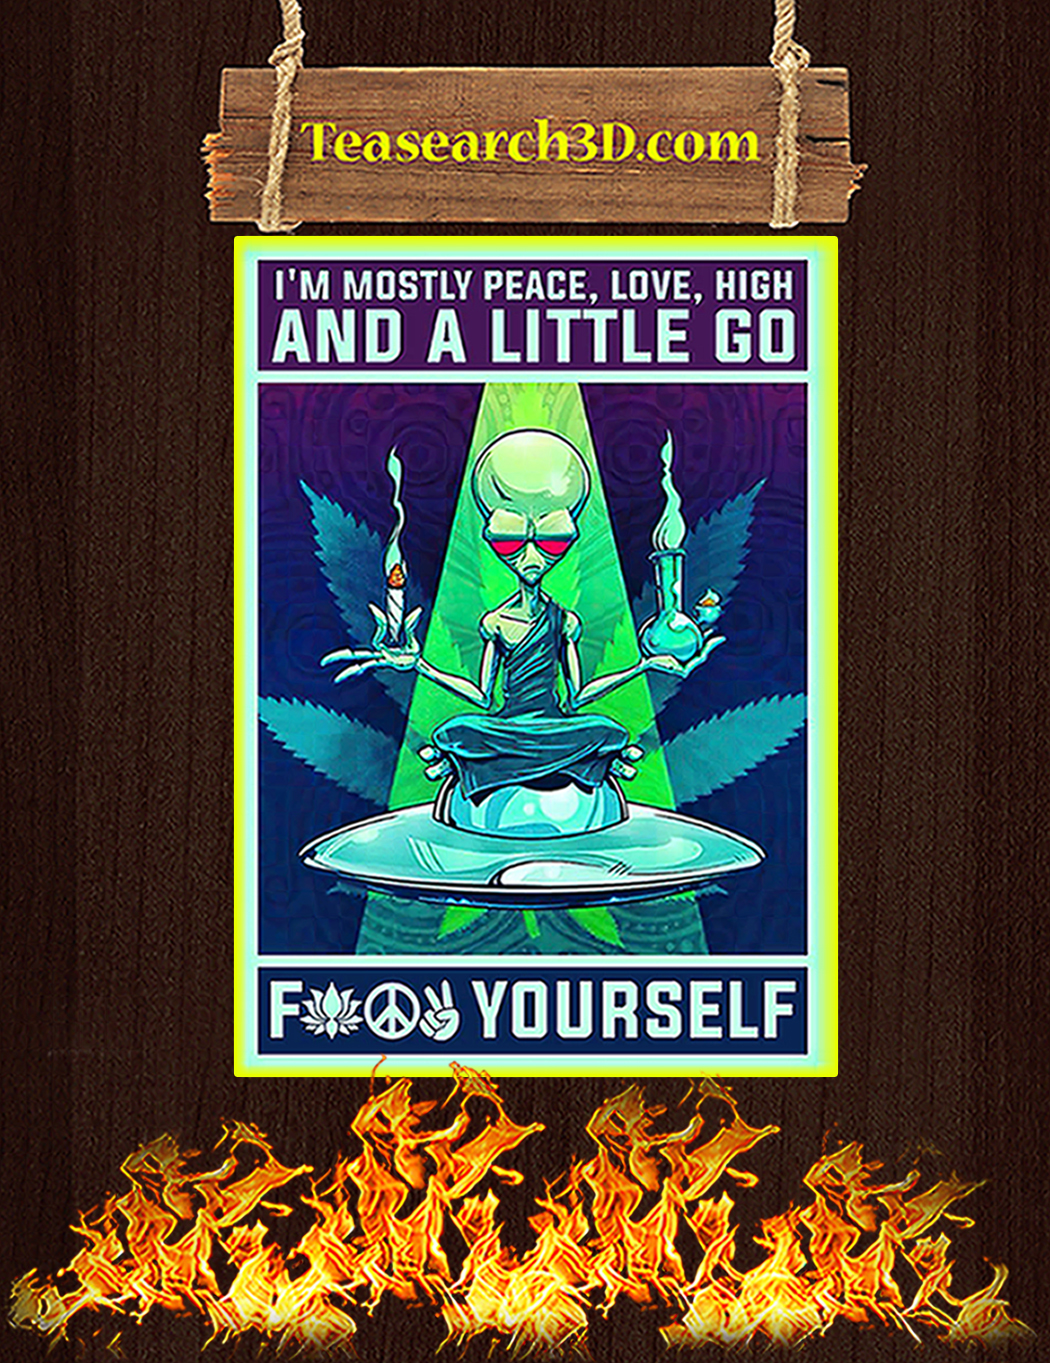 Alien yoga I'm mostly peace love high and a little go fuck yourself poster A1